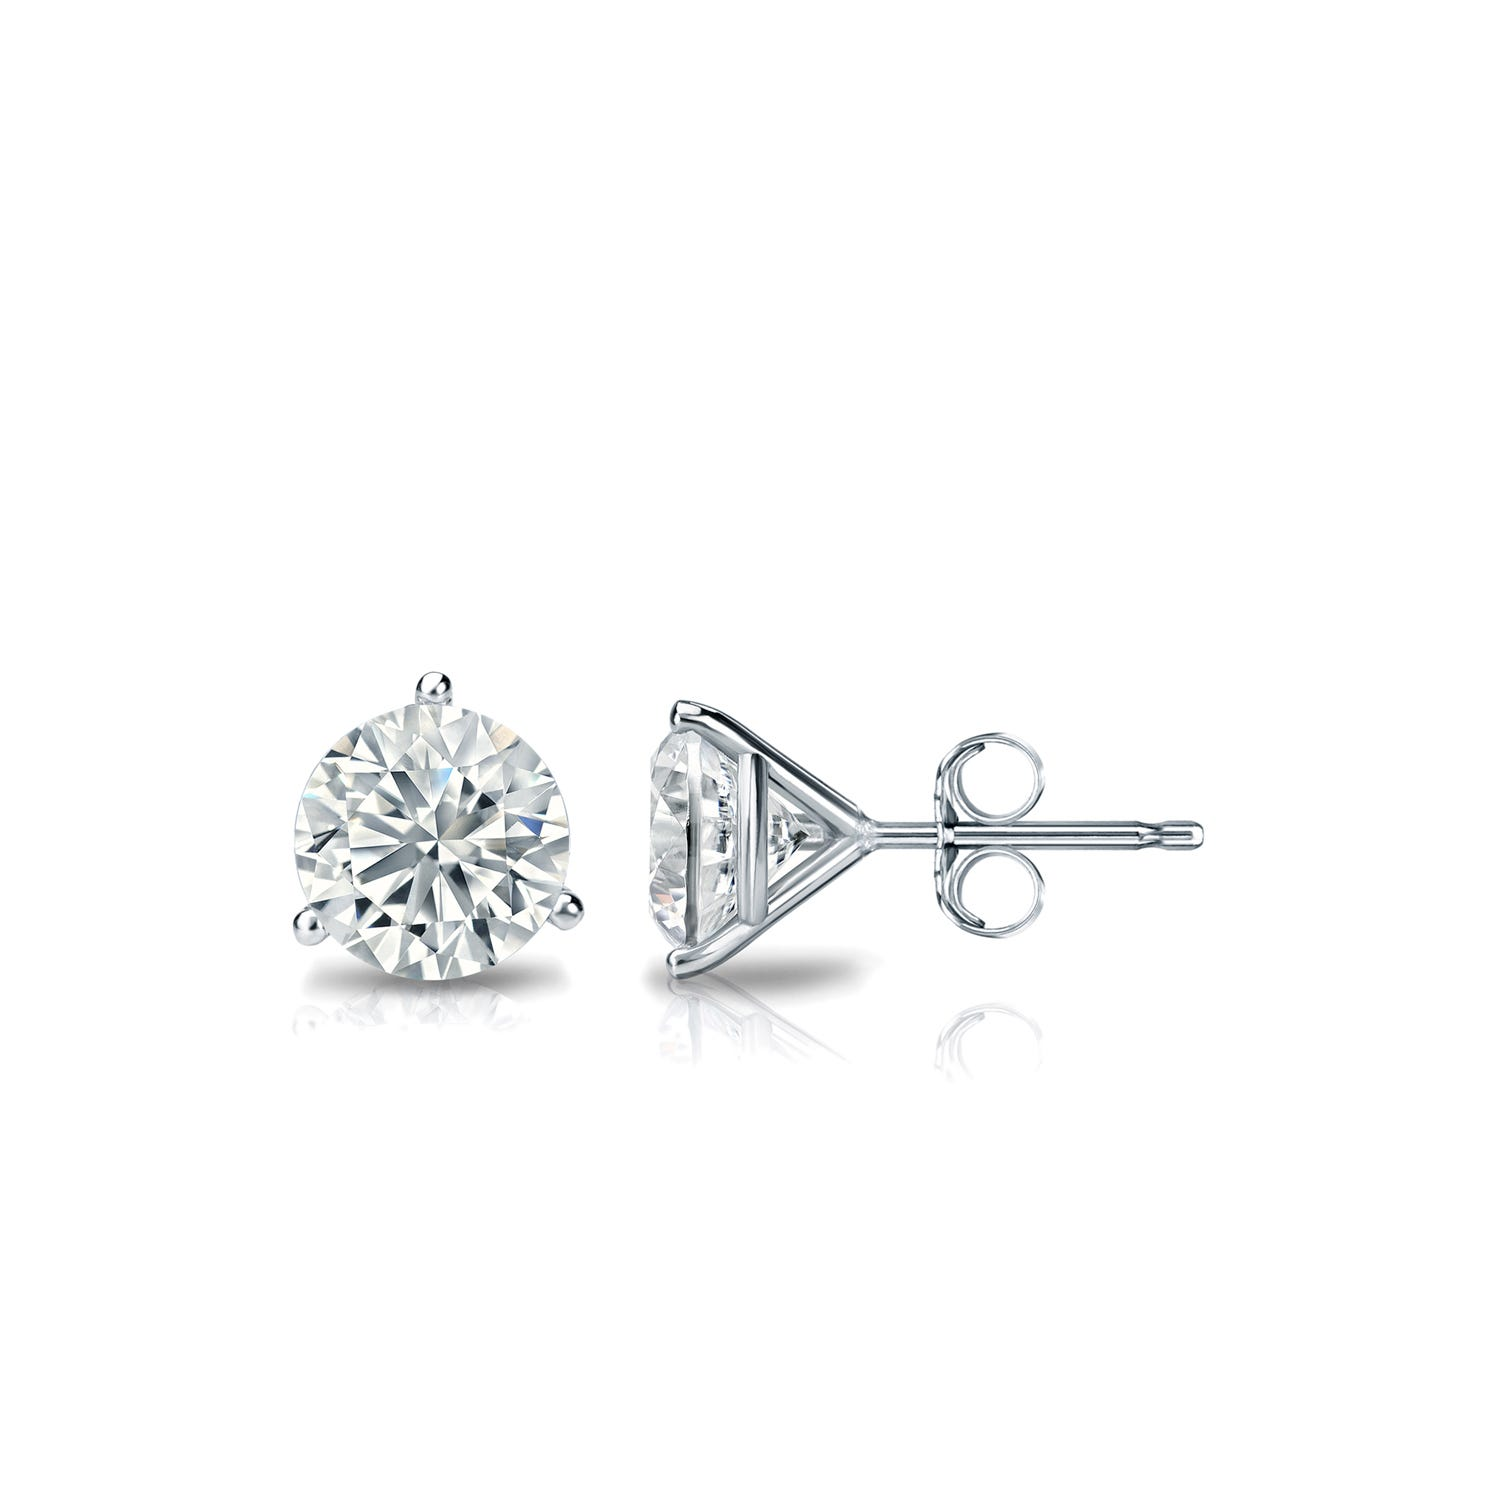 5/8 CTTW Round Diamond Solitaire Stud Earrings IJ SI2 in Platinum 3-Prong Setting